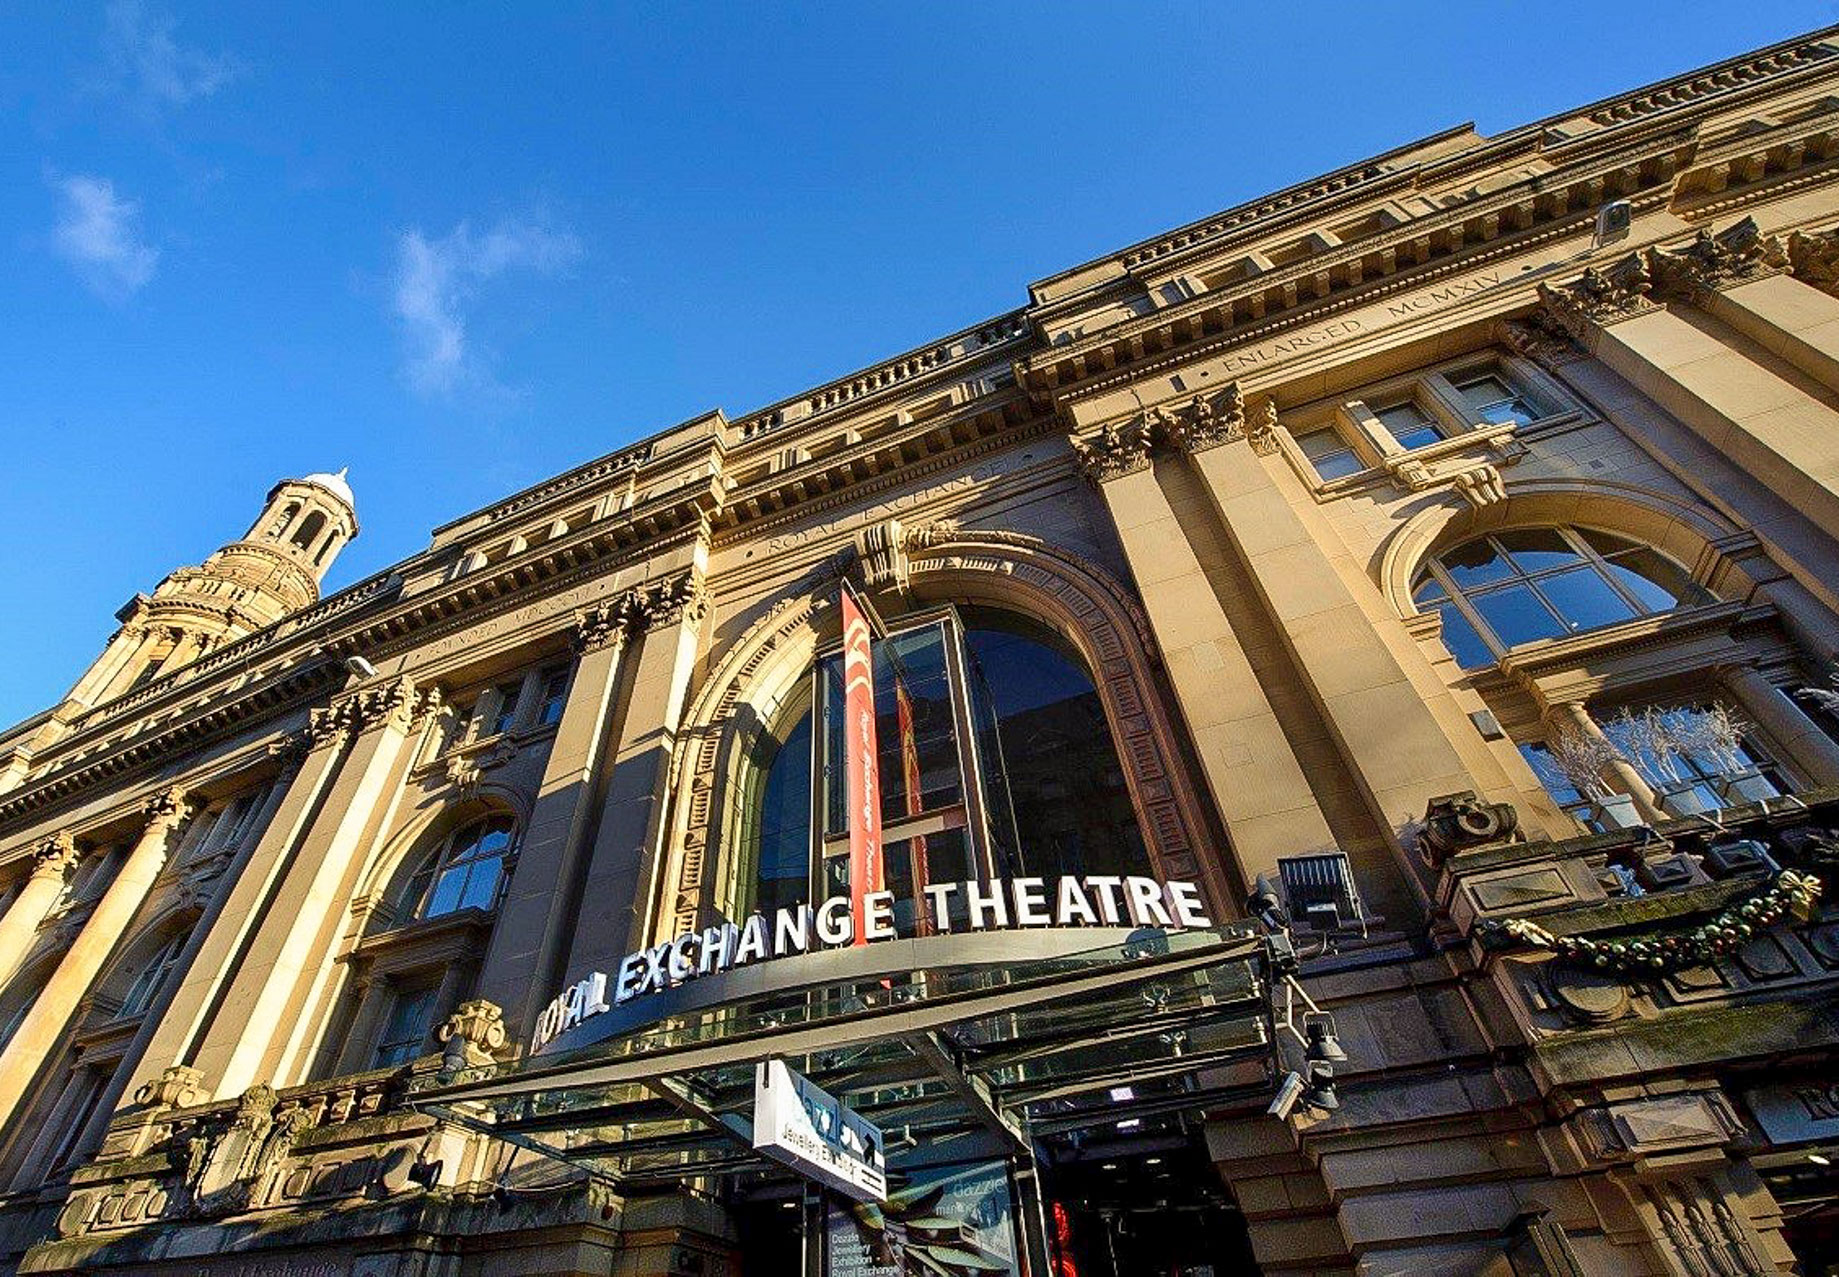 The Royal Exchange Theatre